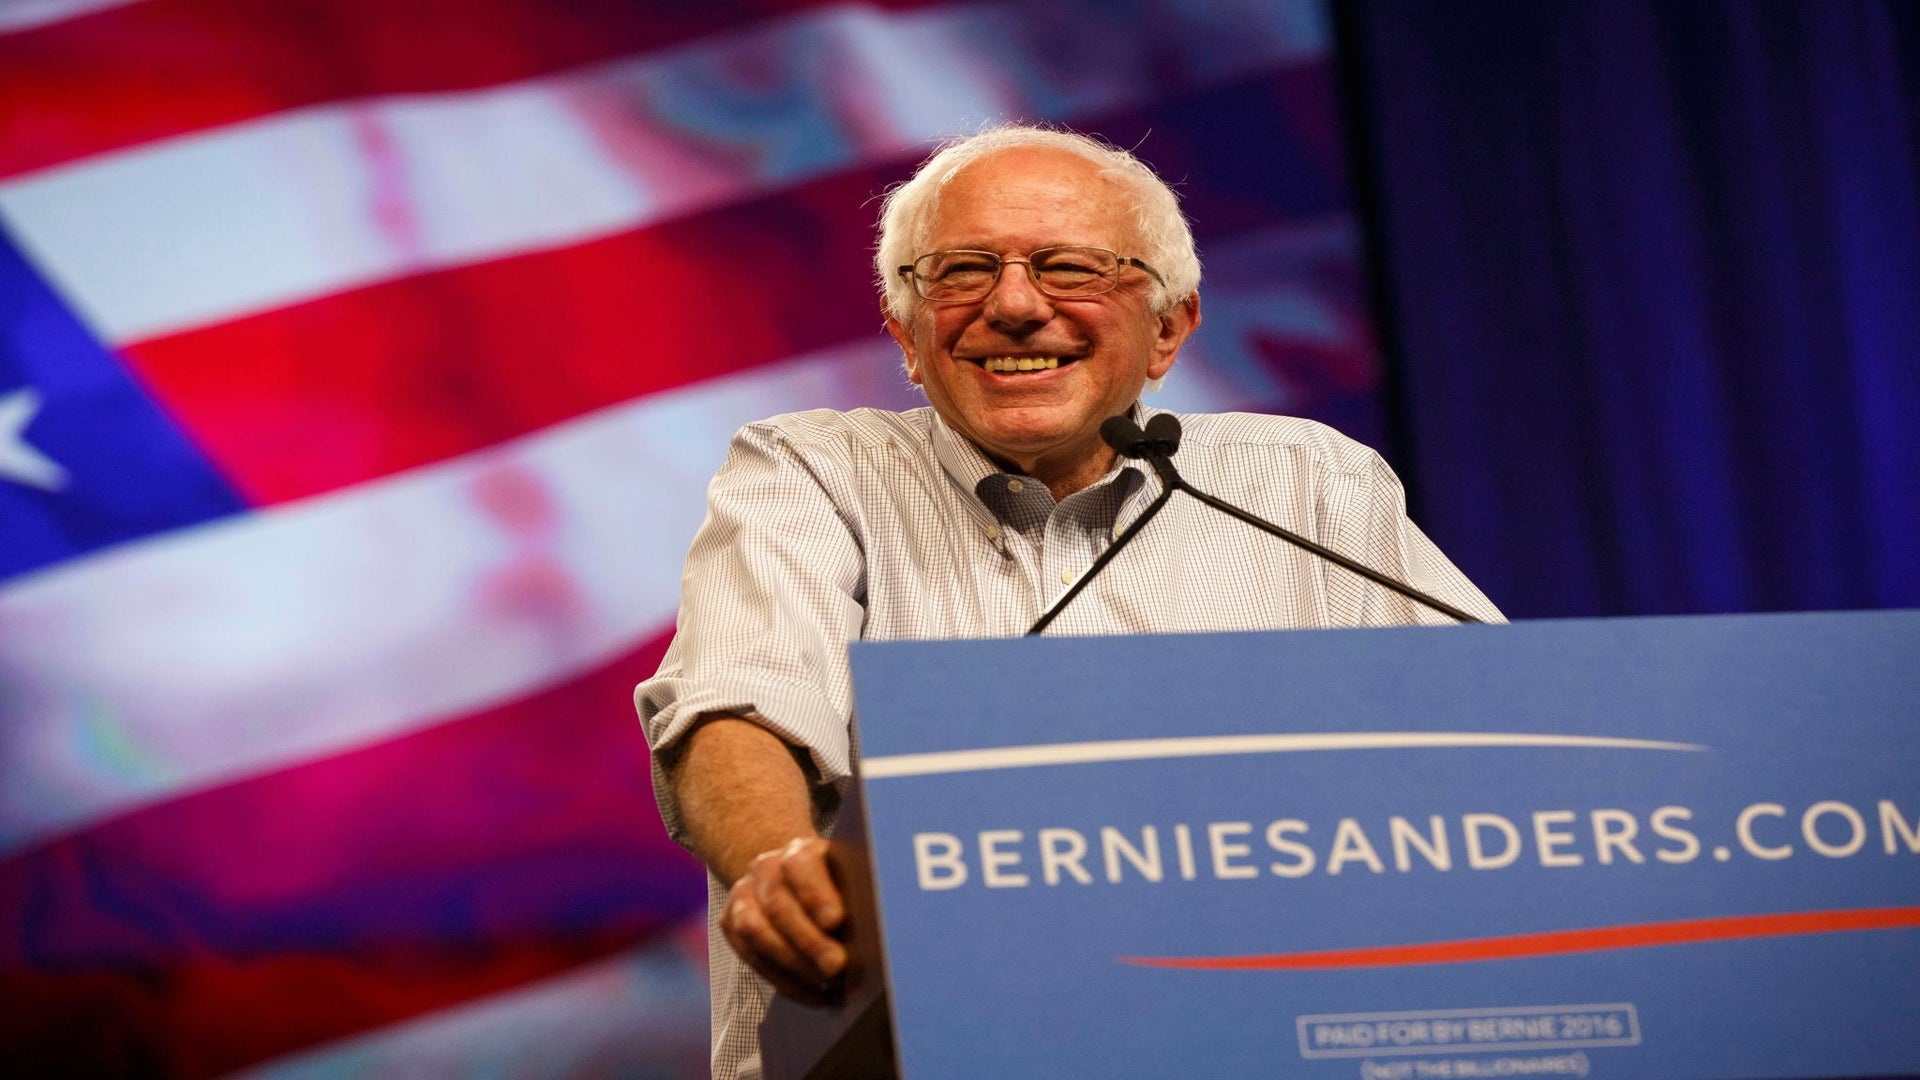 Bernie Sanders Kicks Off National HBCU Tour